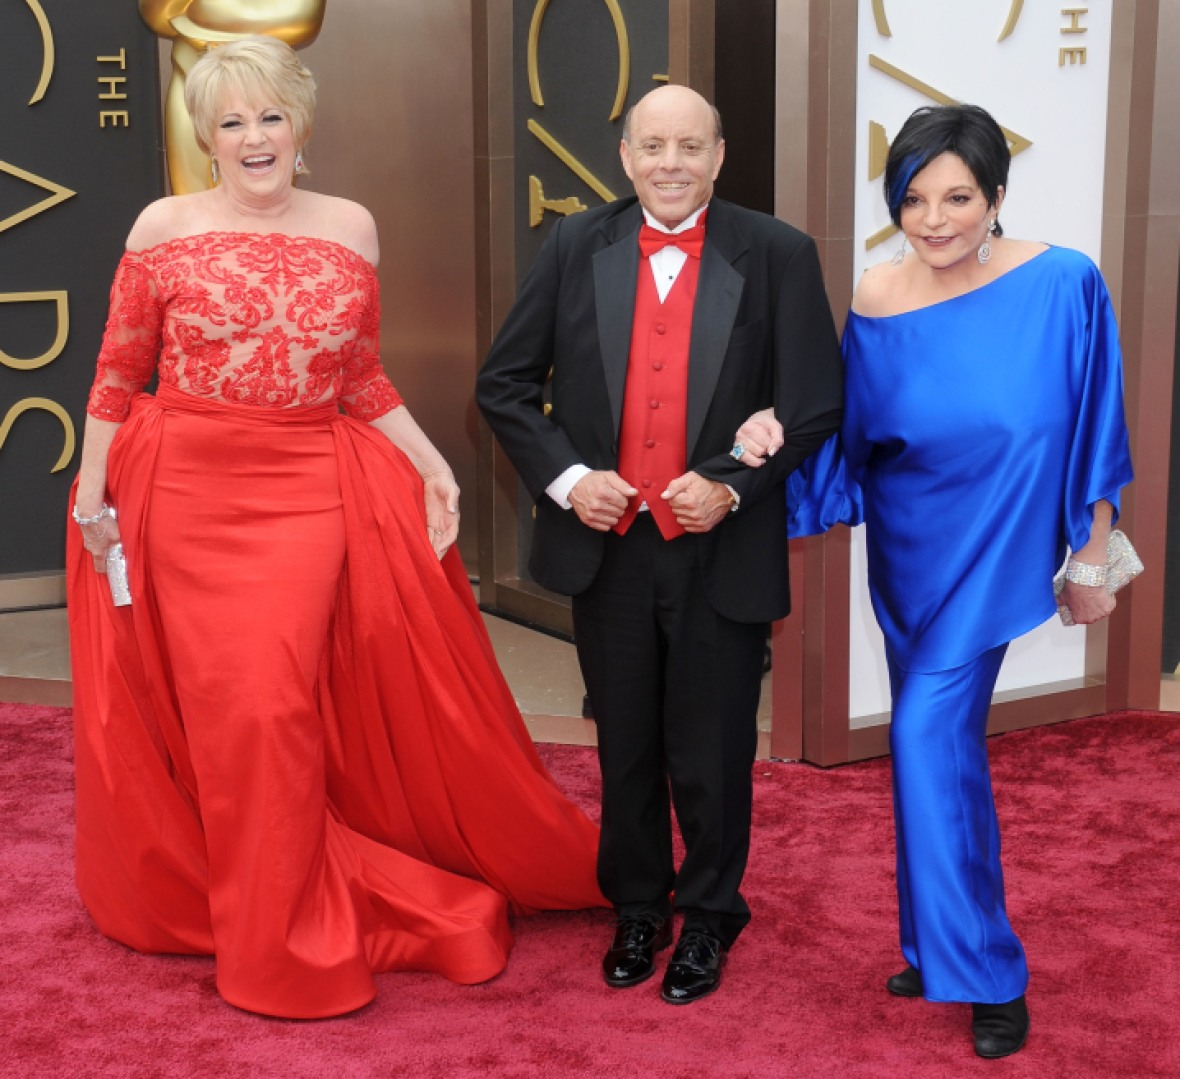 liza minnelli family getty images